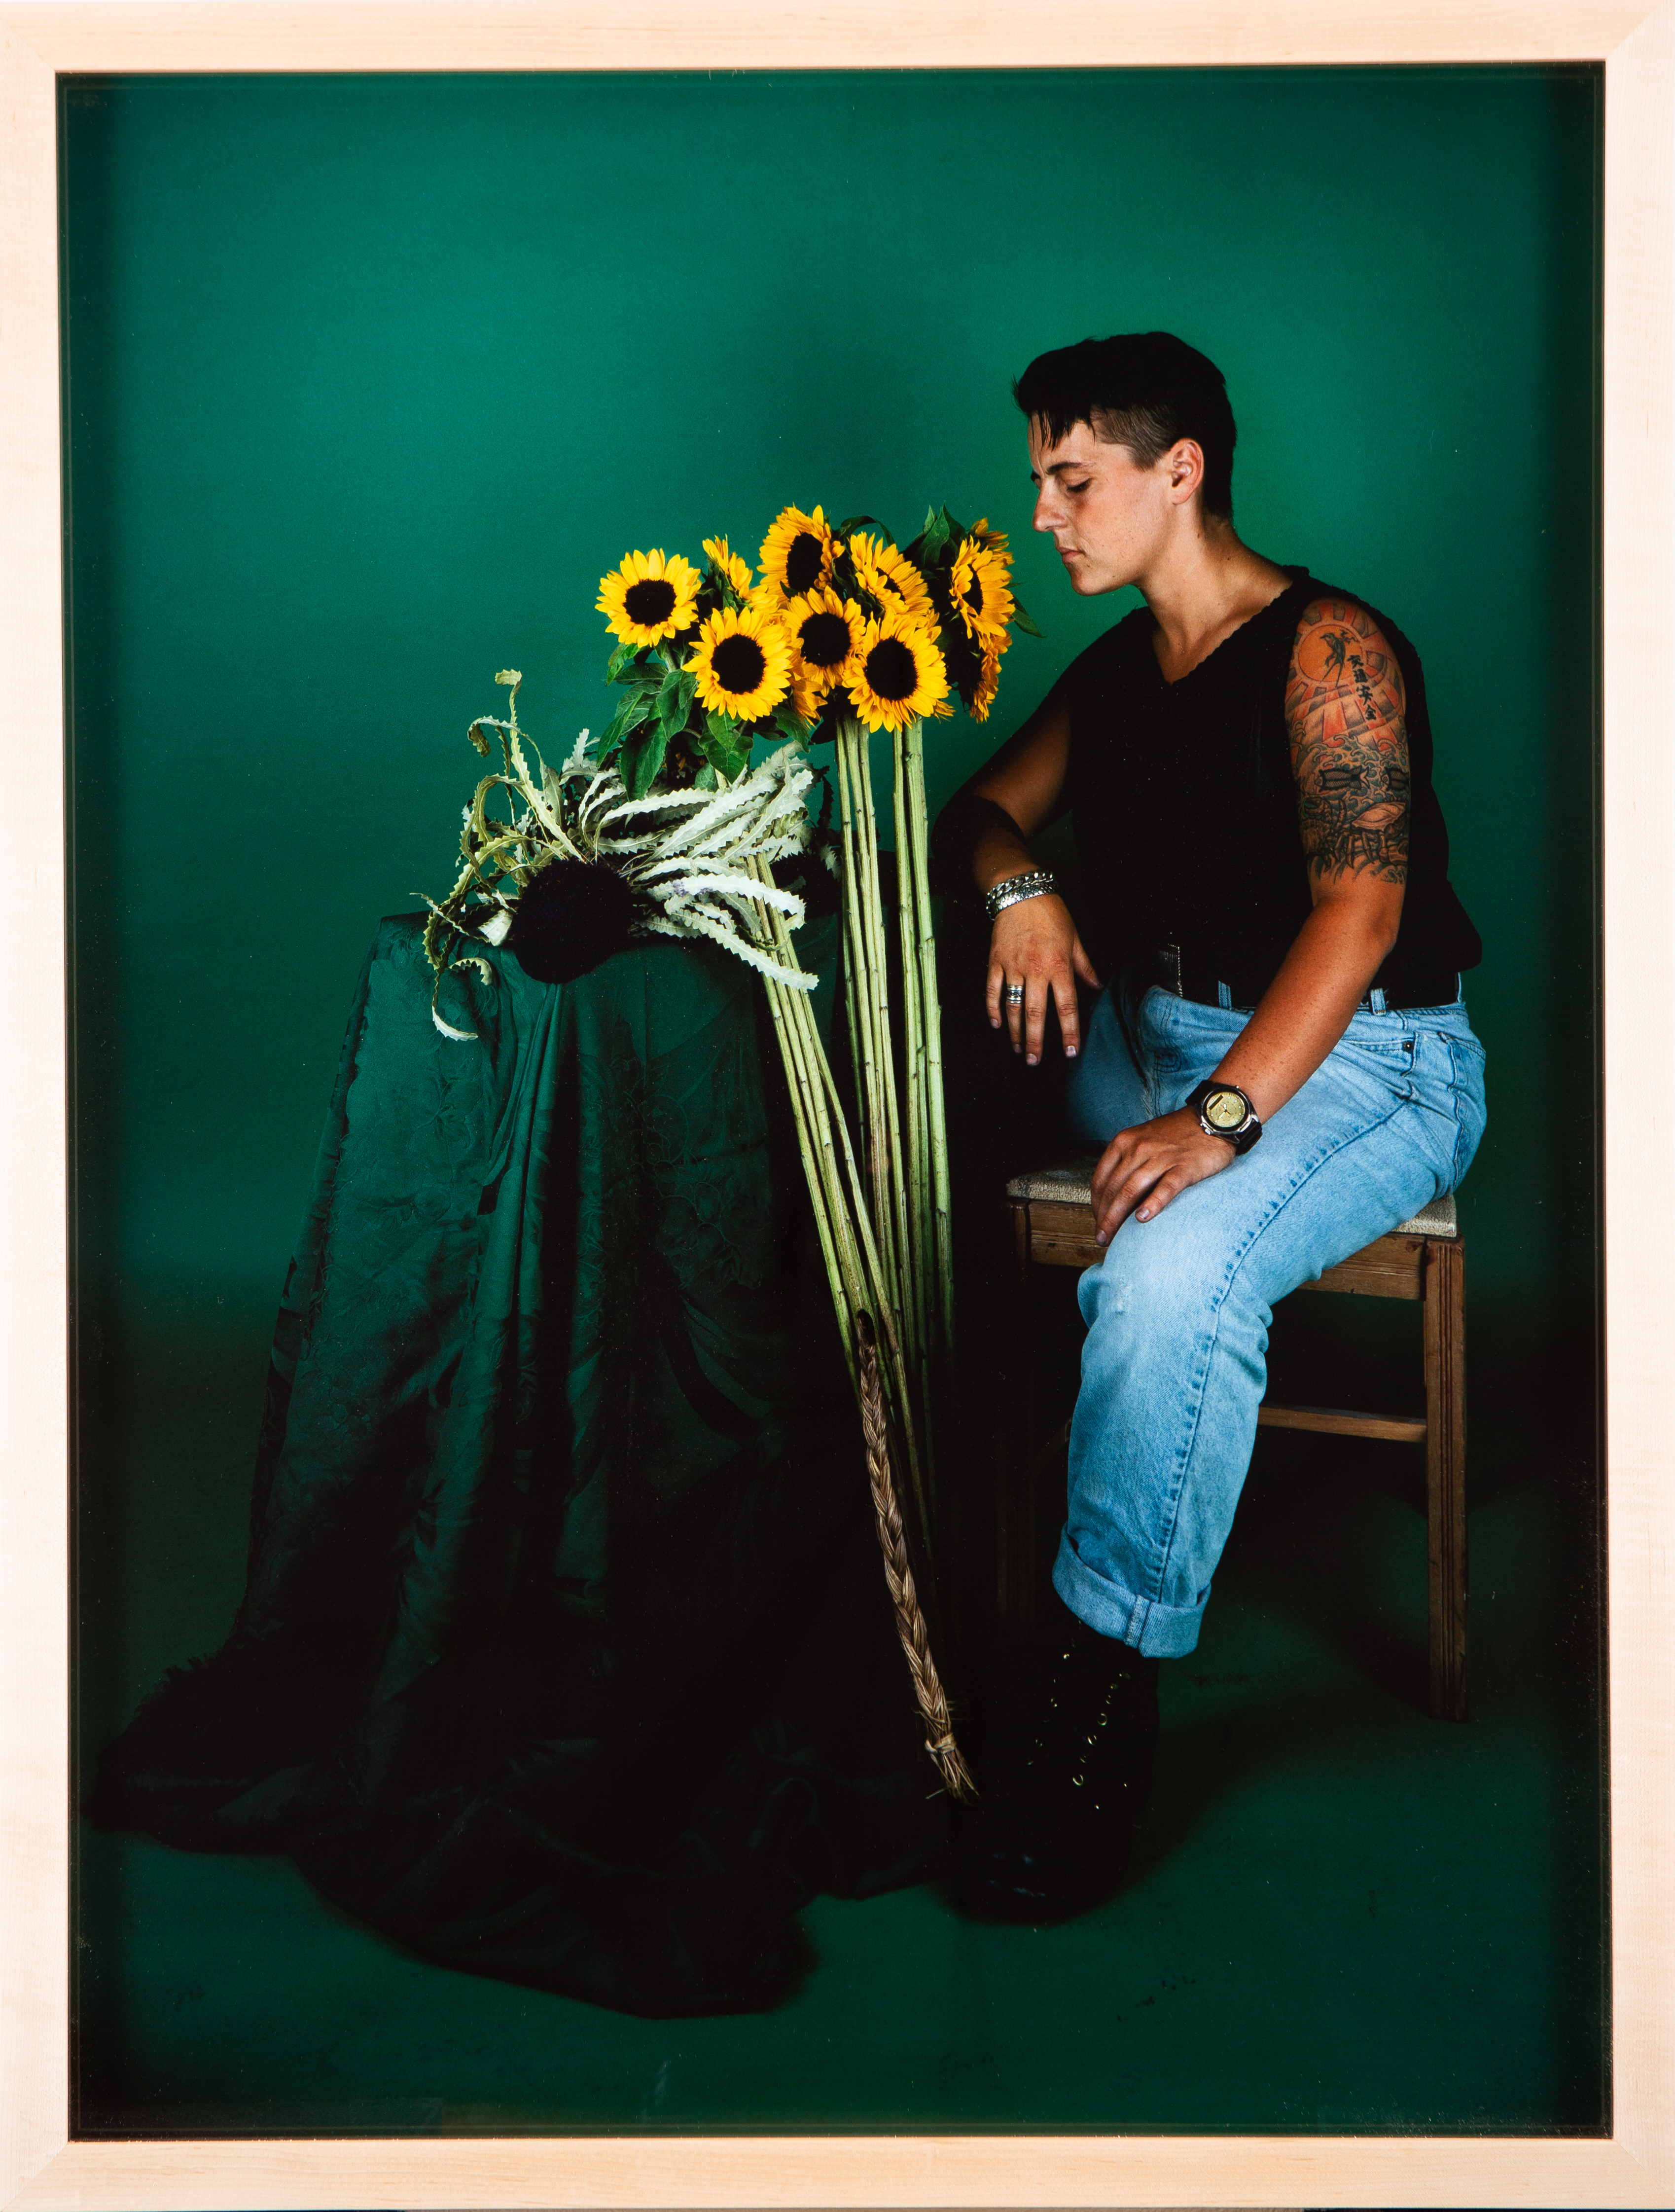 Seated, young, light-skinned adult with tattooed arm faces standing sunflowers in a green room